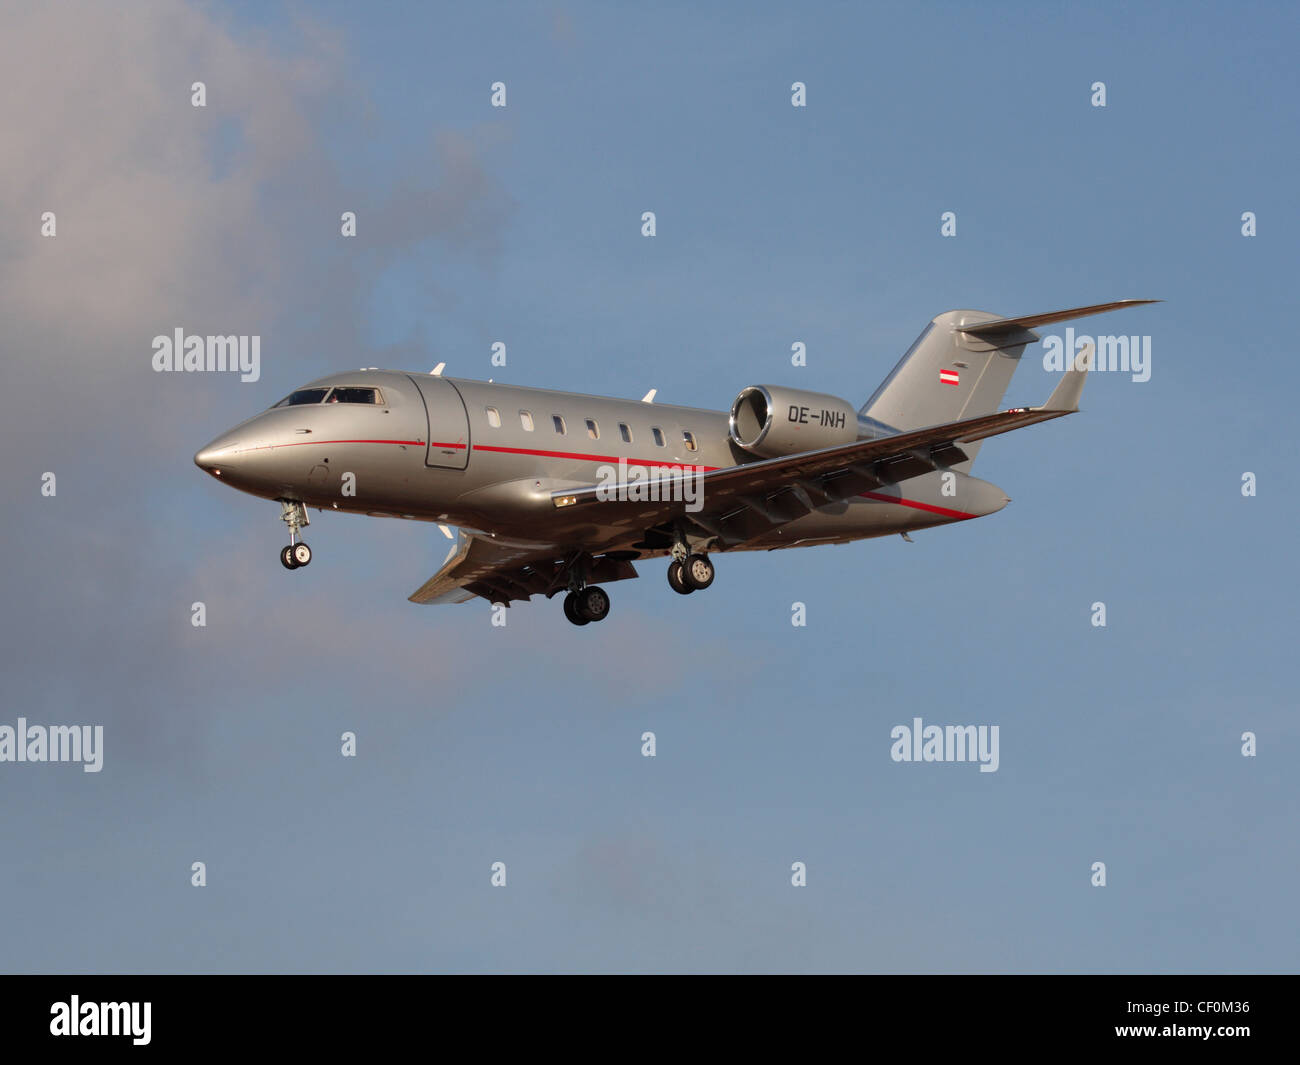 Bombardier Challenger 605 business jet operated by VistaJet - Stock Image